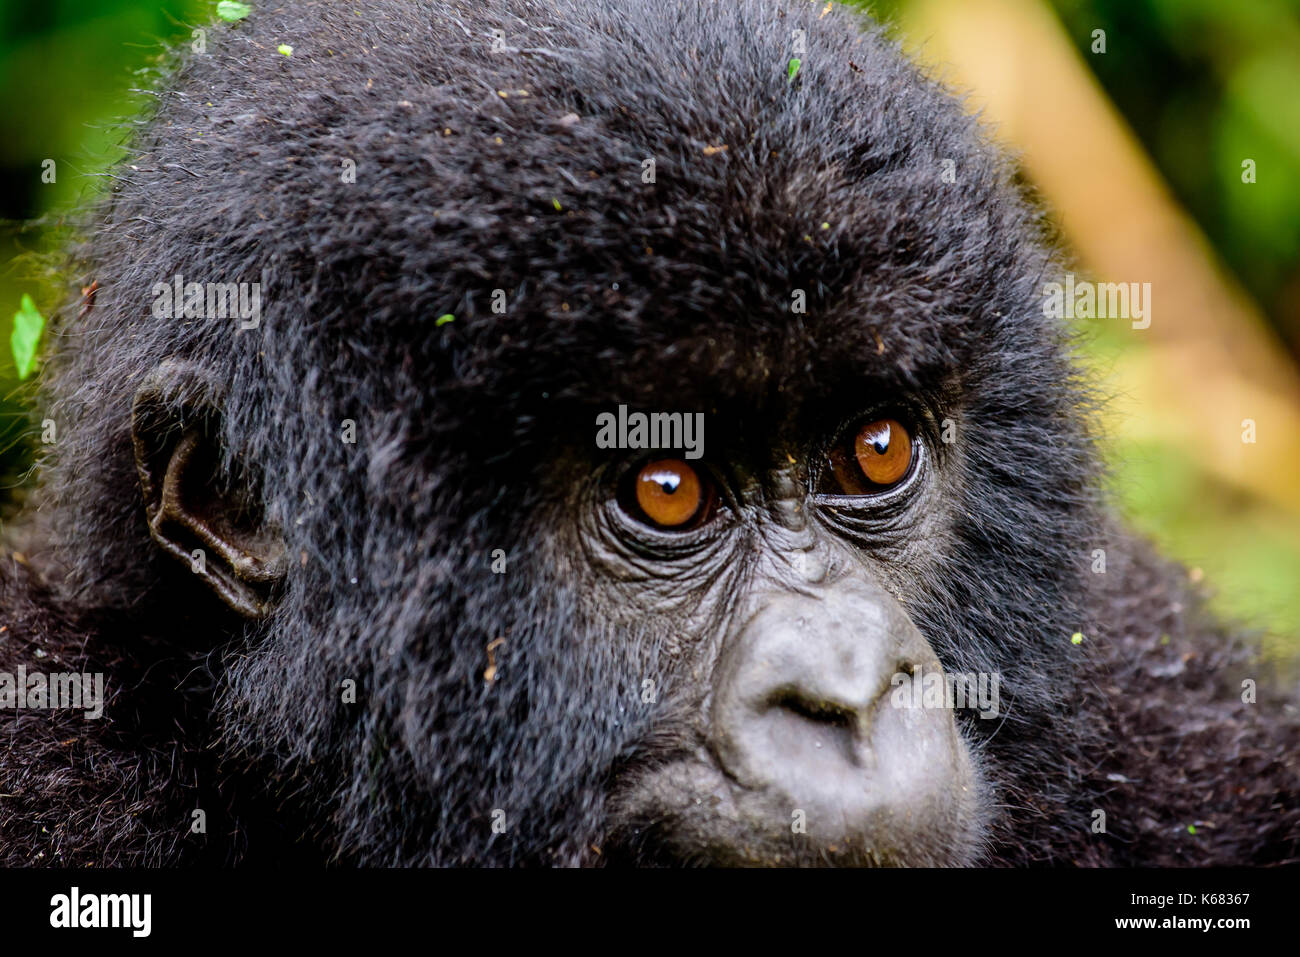 close up of the face and eyes of a baby mountain gorilla - Stock Image